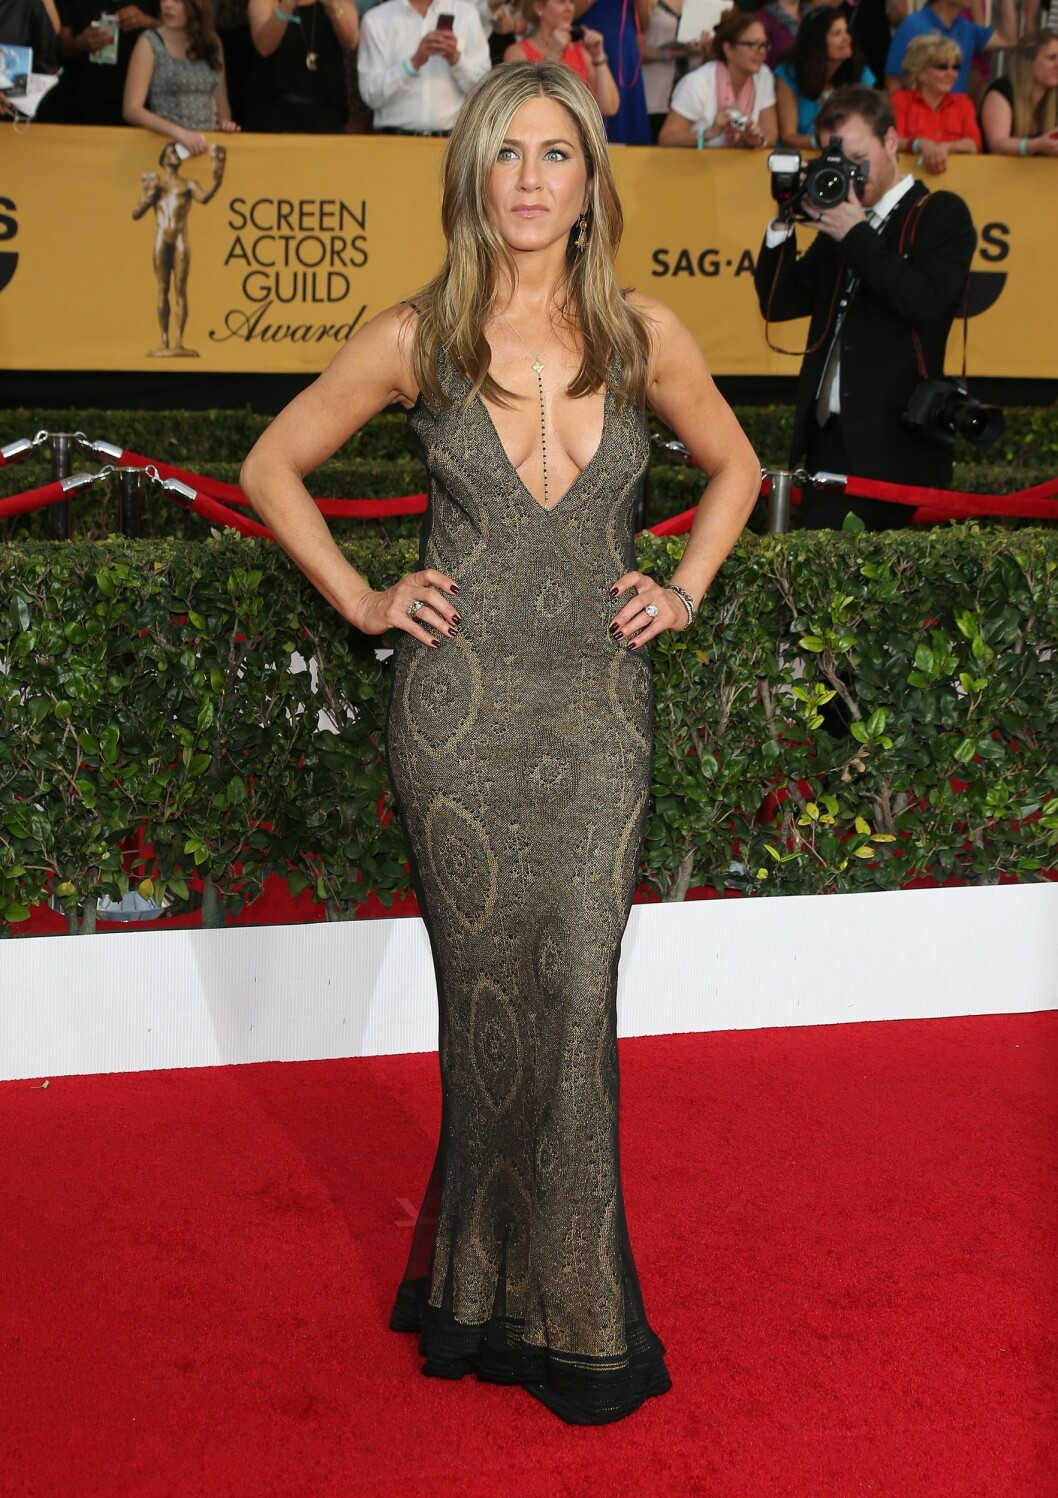 <strong>I VINTAGE GALLIANO:</strong> Cake-nominerte Jennifer Aniston var en av de få som gikk for en dyp klft under nattens årlige Annual Screen Actors Guild Awards i Hollywood.   Foto: Jen Lowery / Splash News/ All Ov